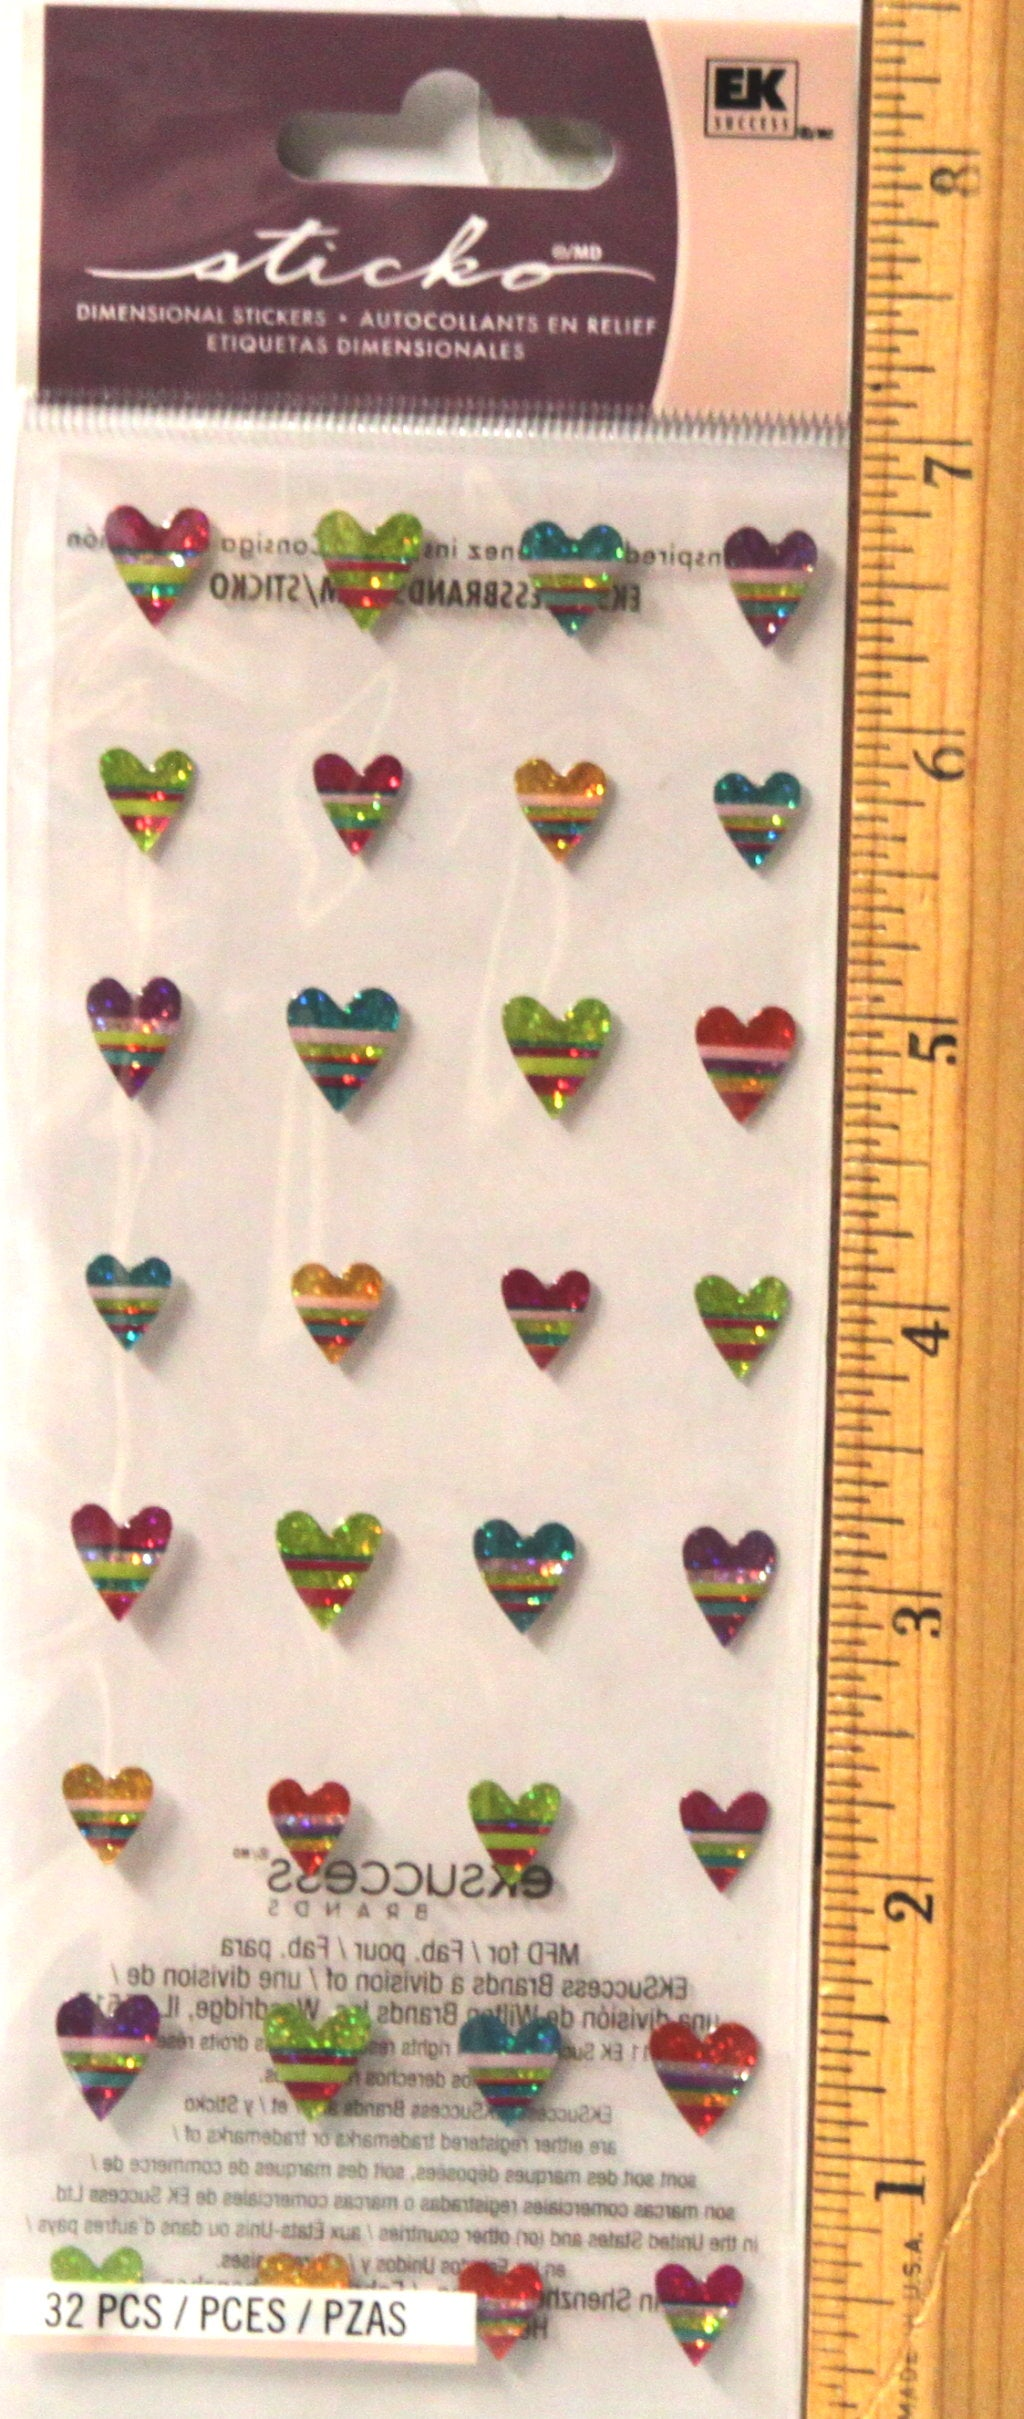 Sticko Candy Stripe Hearts Dimensional Epoxy Stickers